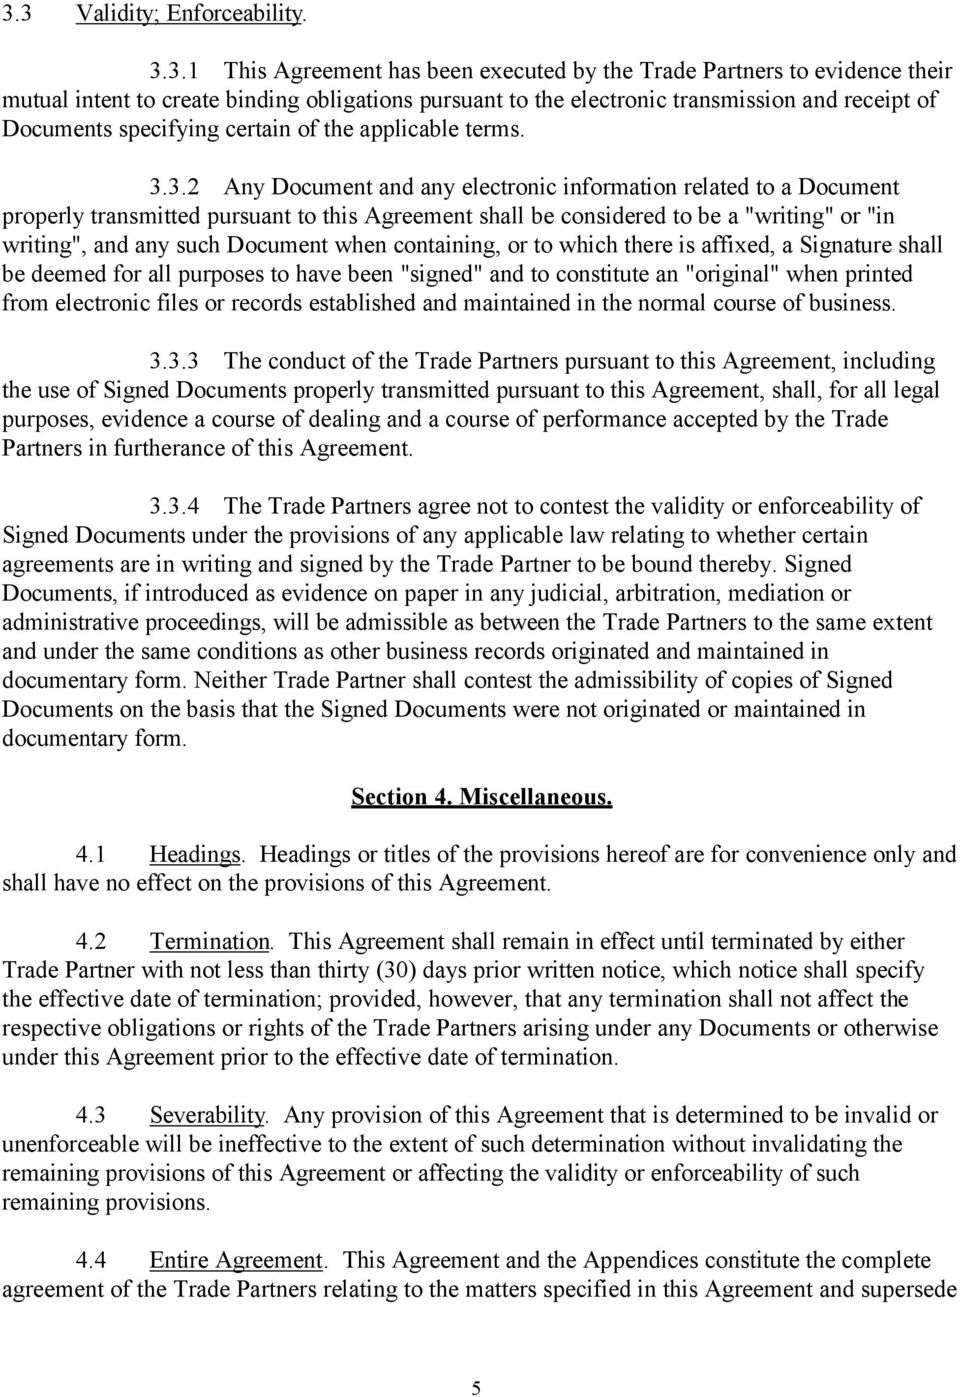 "3.2 Any Document and any electronic information related to a Document properly transmitted pursuant to this Agreement shall be considered to be a ""writing"" or ""in writing"", and any such Document when"